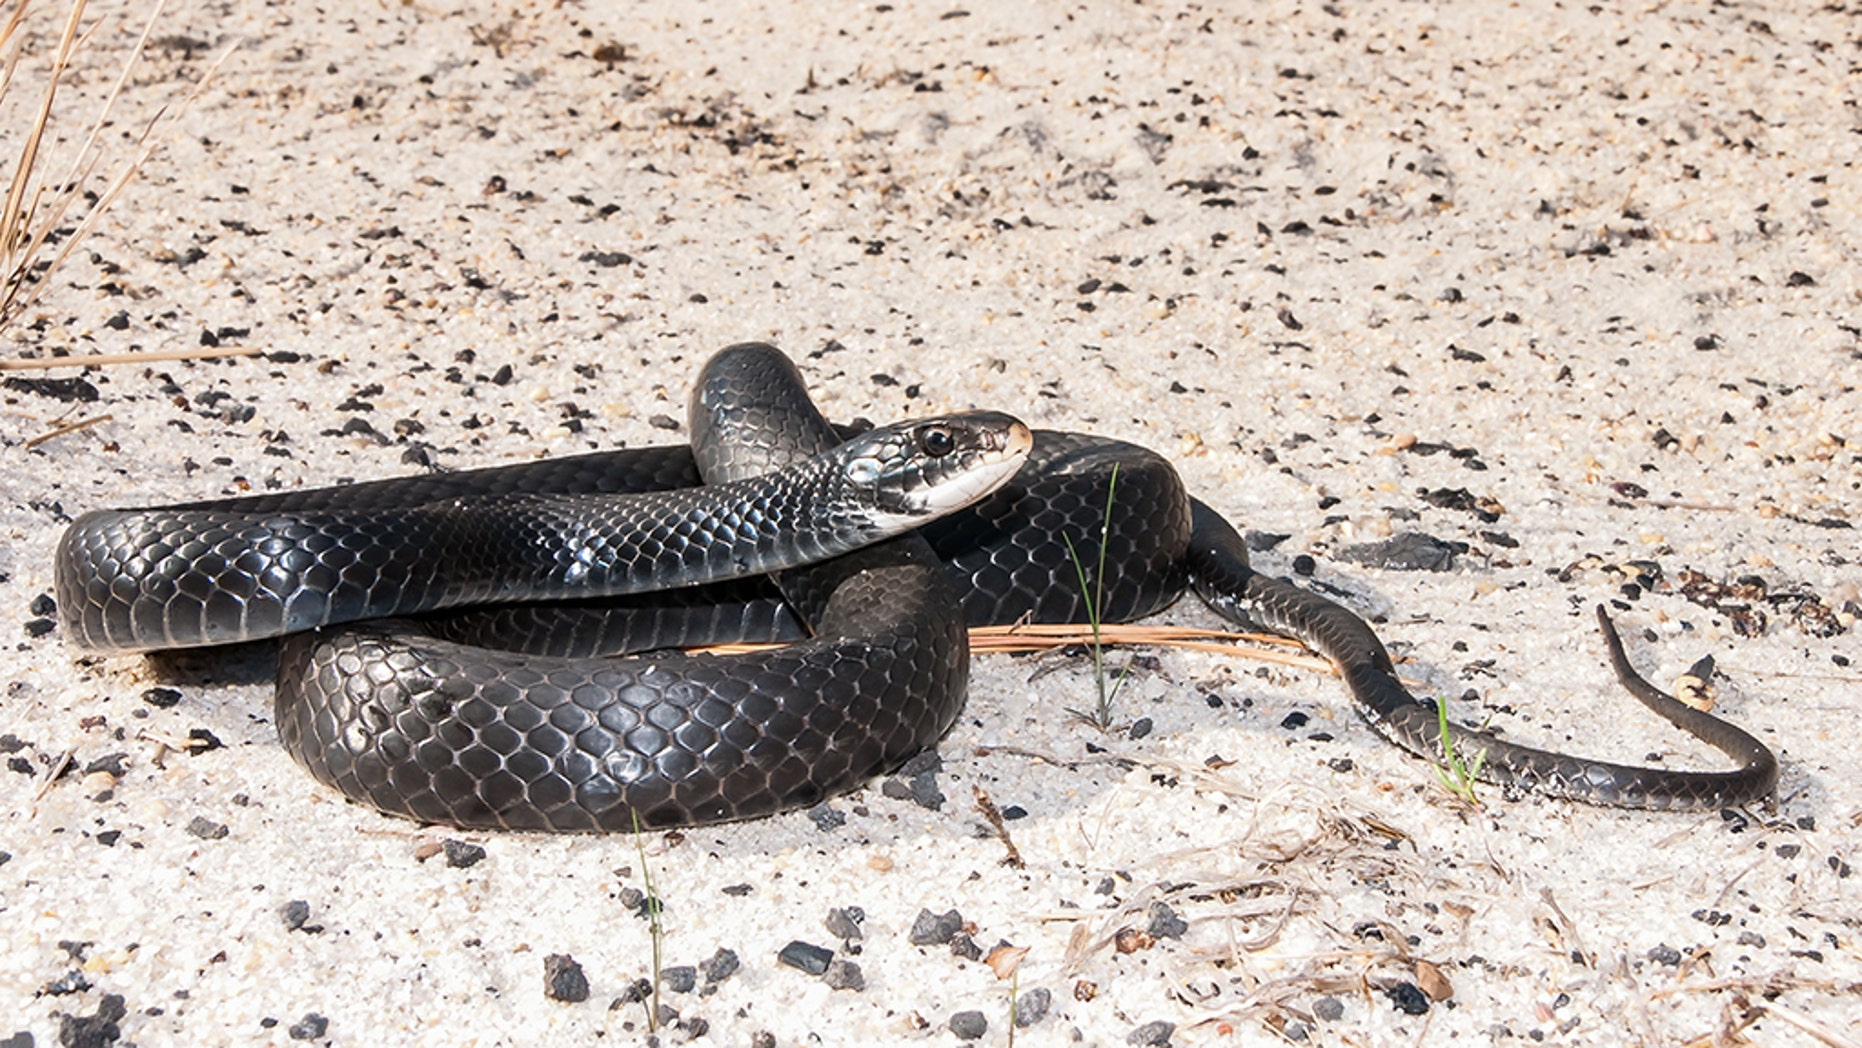 A close up of a Southern Black Racer coiled up on a dirt road in Florida. (iStock)